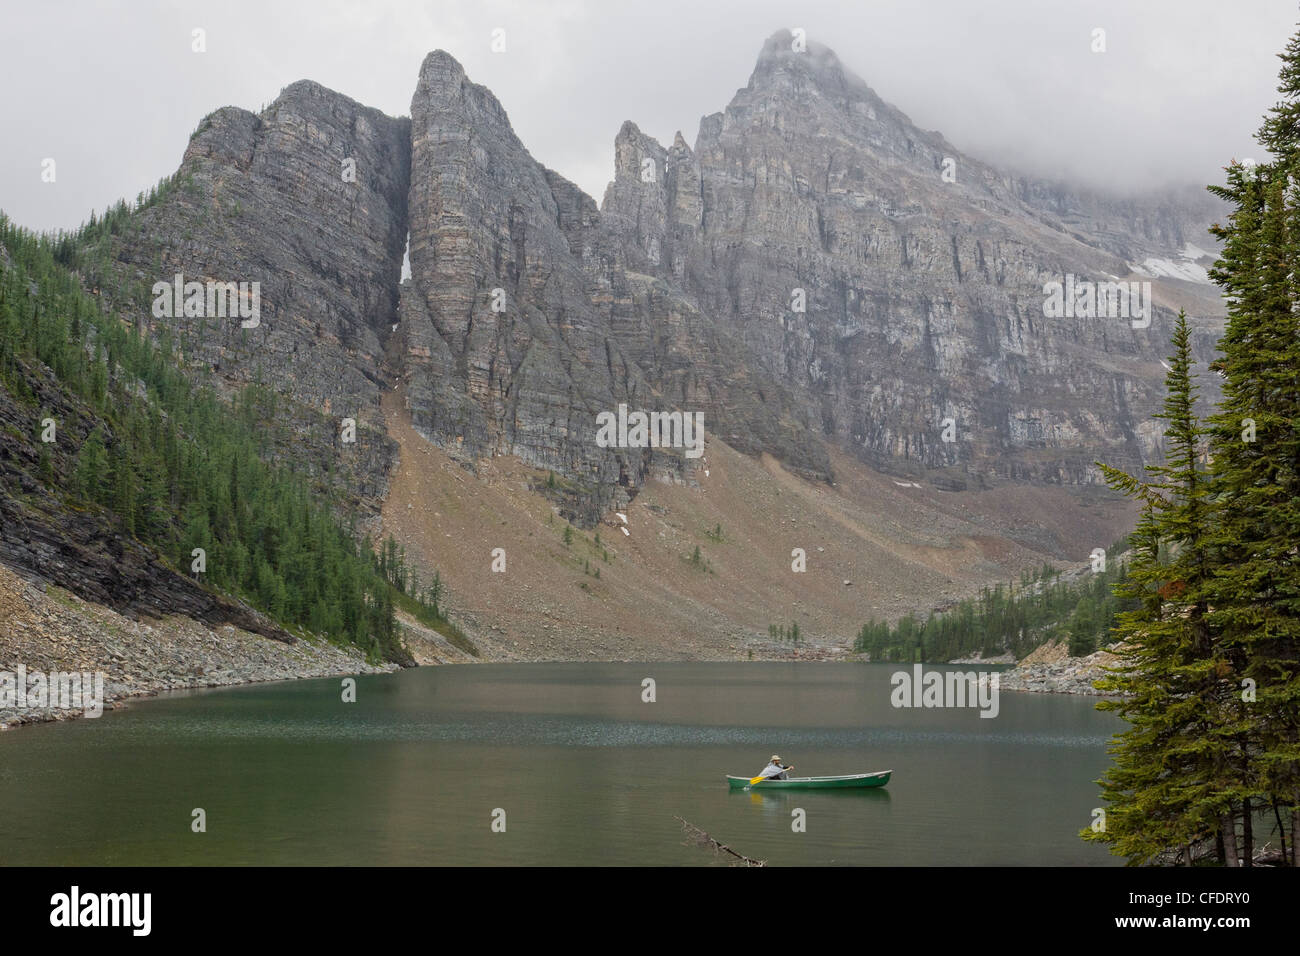 Man canoeing on Lake Agnes on a rainy day in Banff National Park, Alberta, Canada - Stock Image